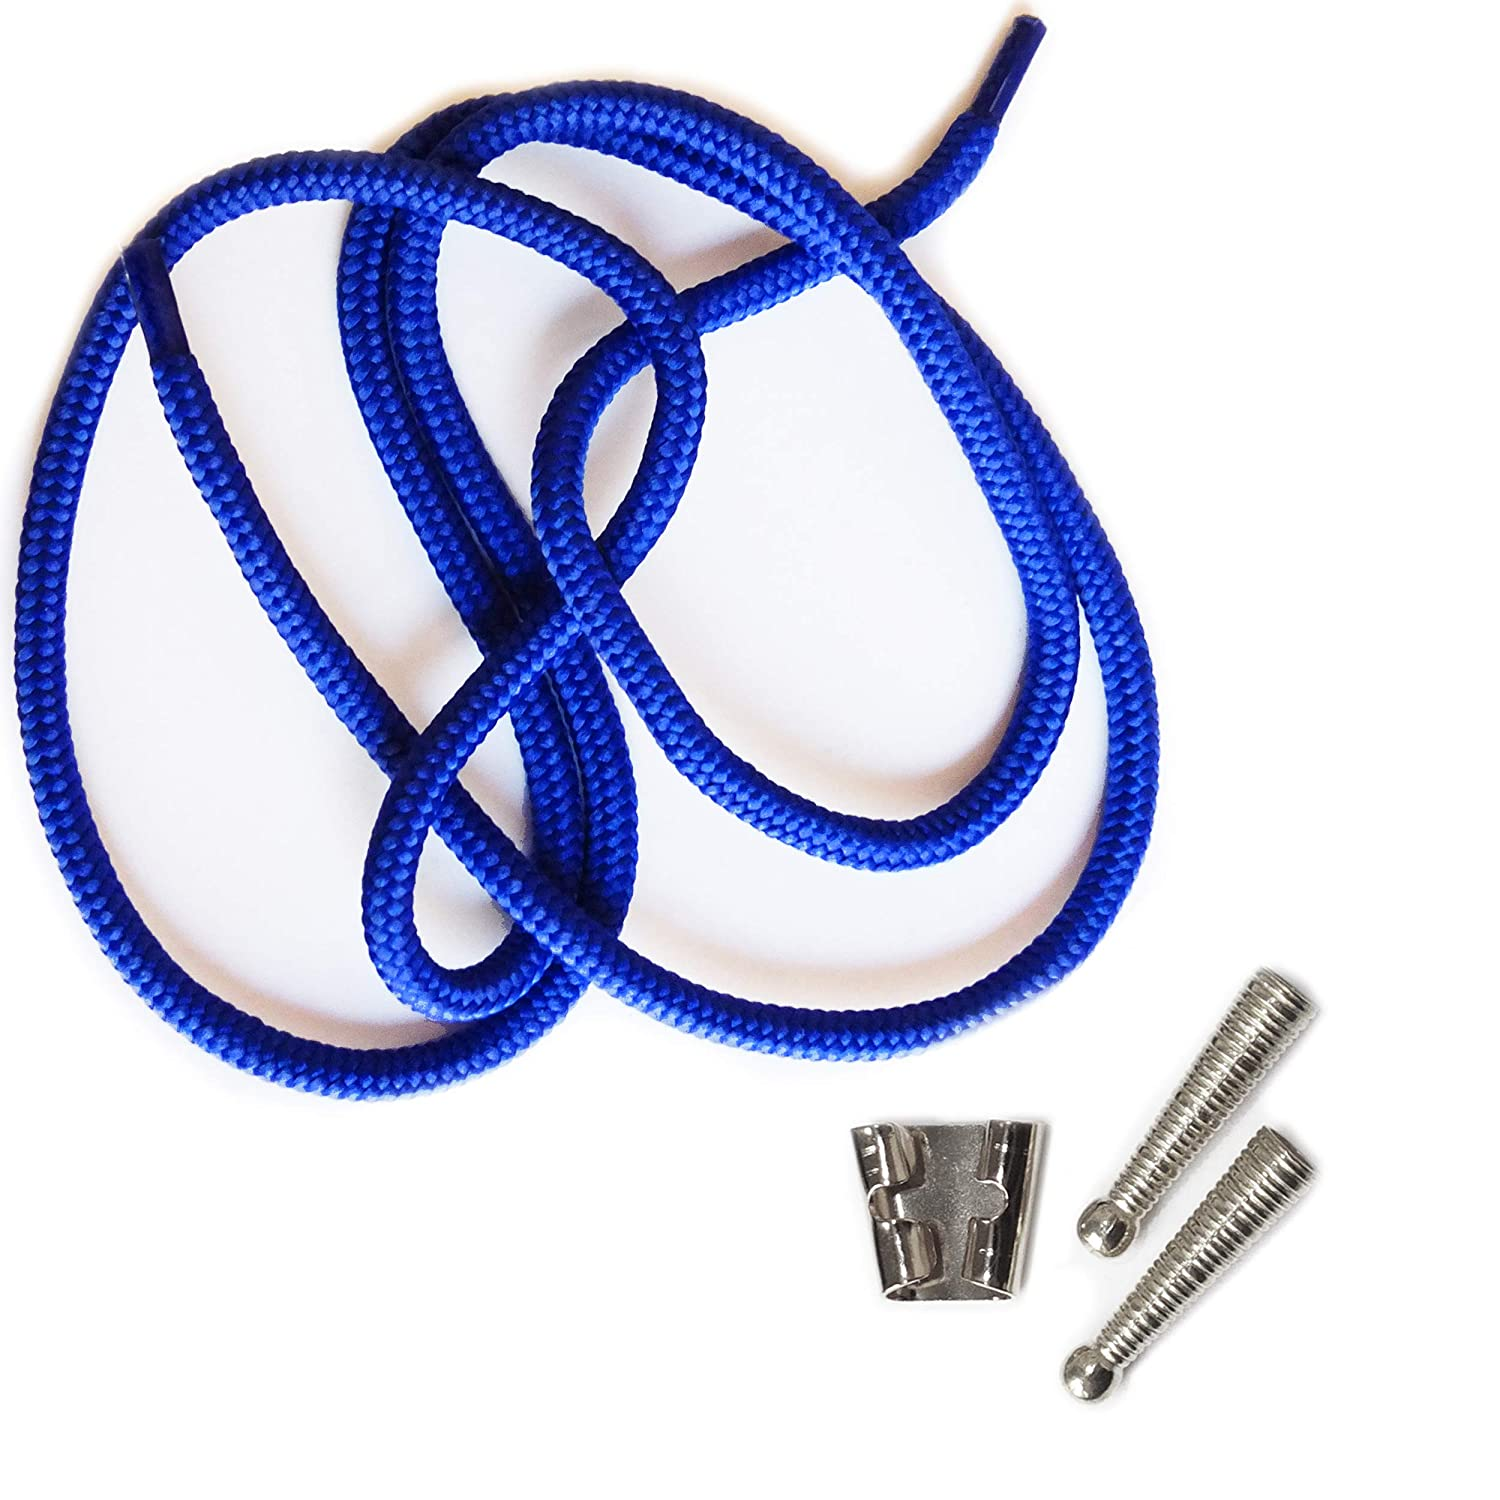 Blank Bolo String Tie Parts Kit Standard Slide Textured Tips Royal Blue Cord DIY Silver Tone Supplies for 4 Ties